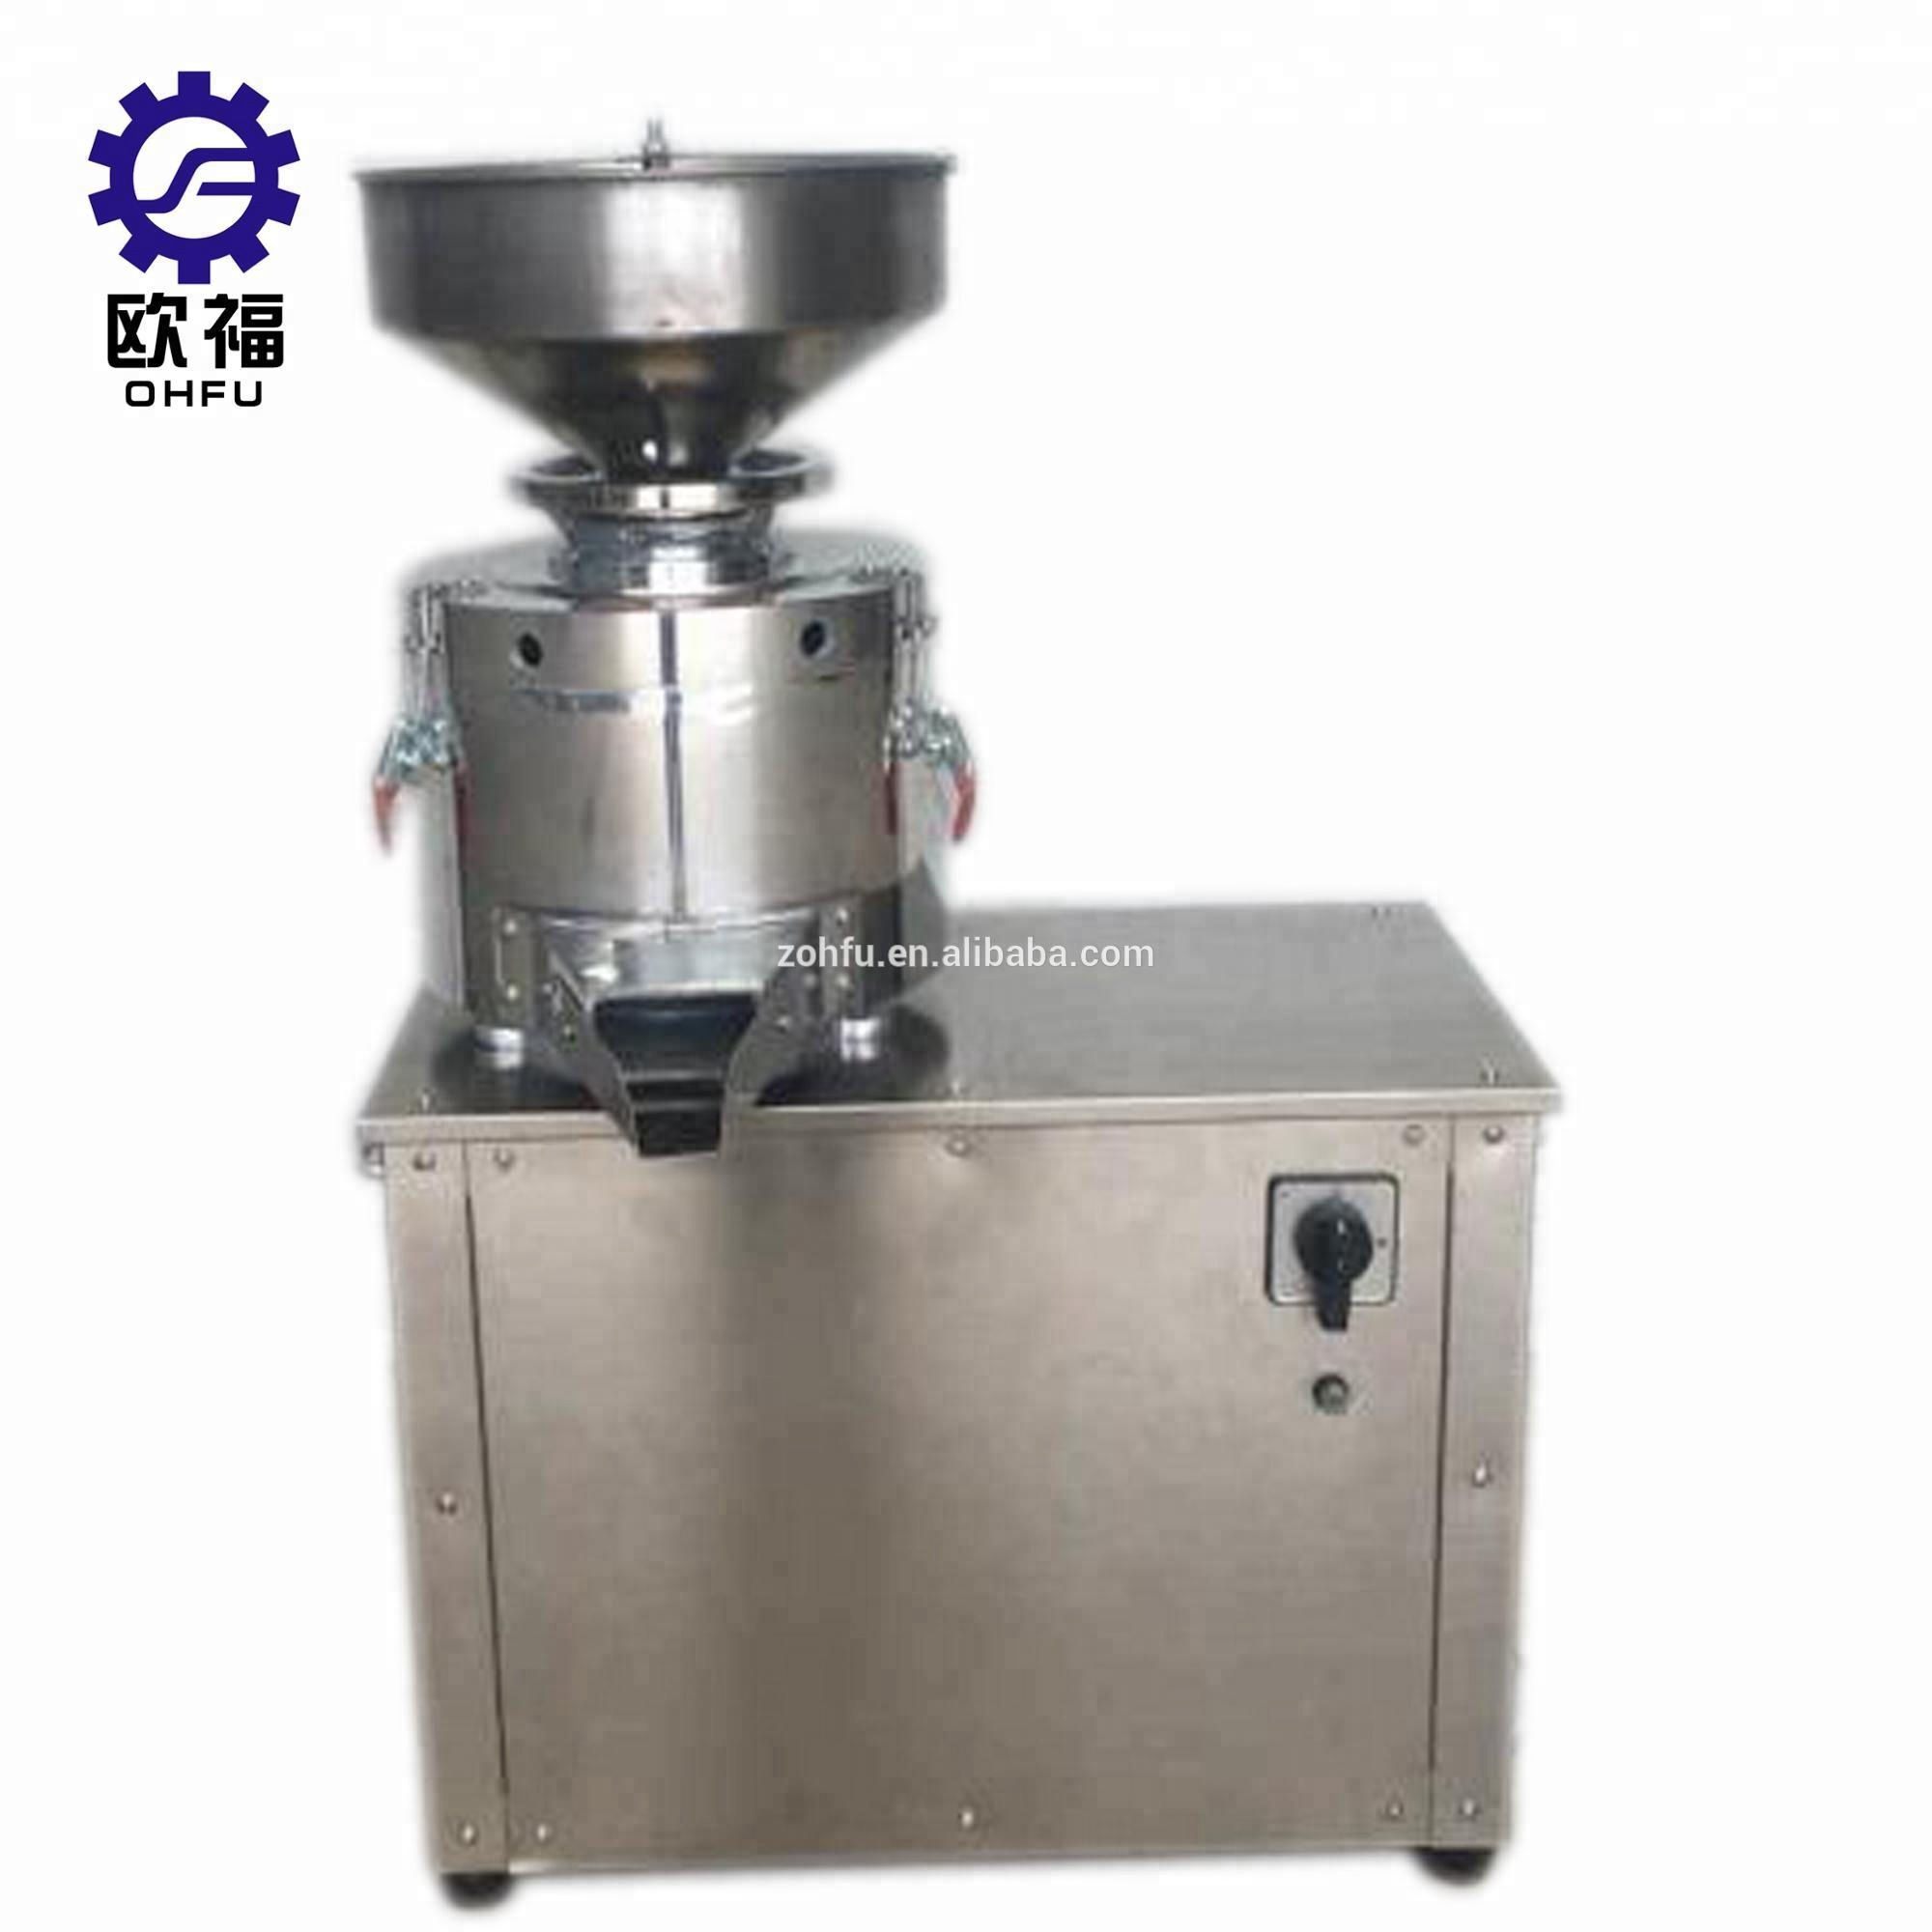 Discount Price Coffee Grinder Commercial Buy Asda Coffee Grindermoulinex Coffee Grinderdelonghi Aromatic Coffee Grinder Product On Alibabacom